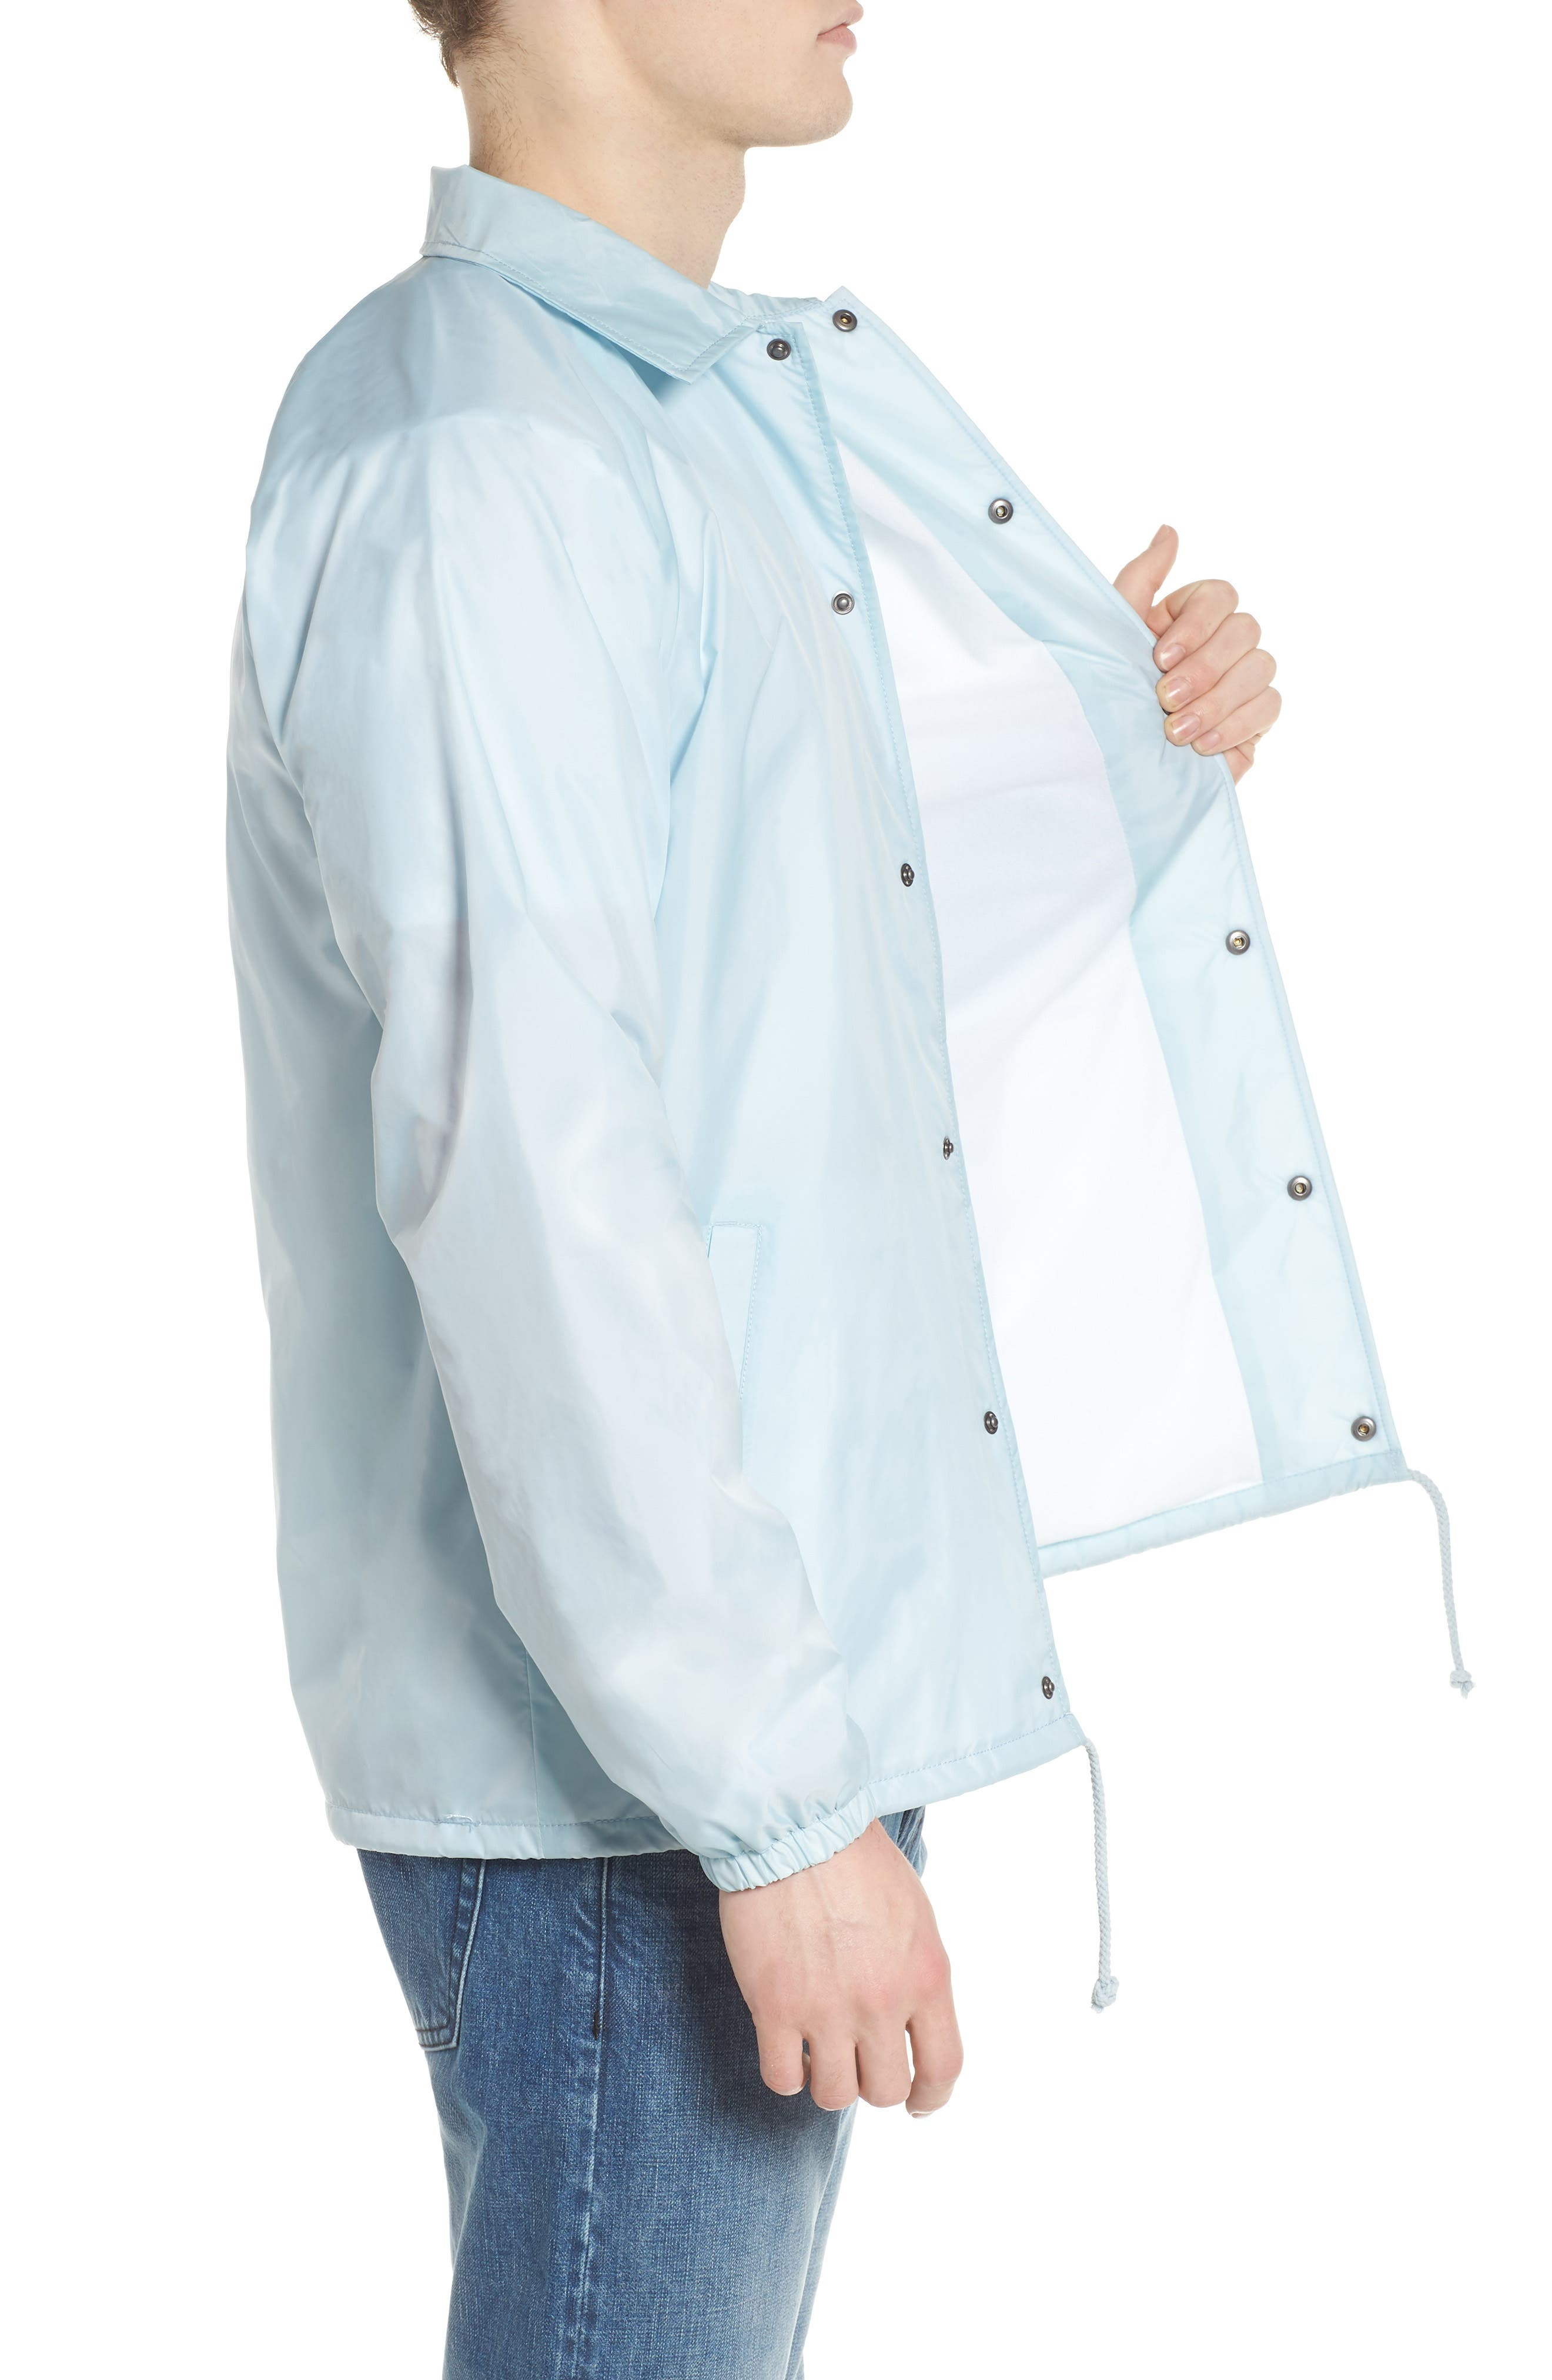 Torrey Water Resistant Jacket,                             Alternate thumbnail 3, color,                             Baby Blue